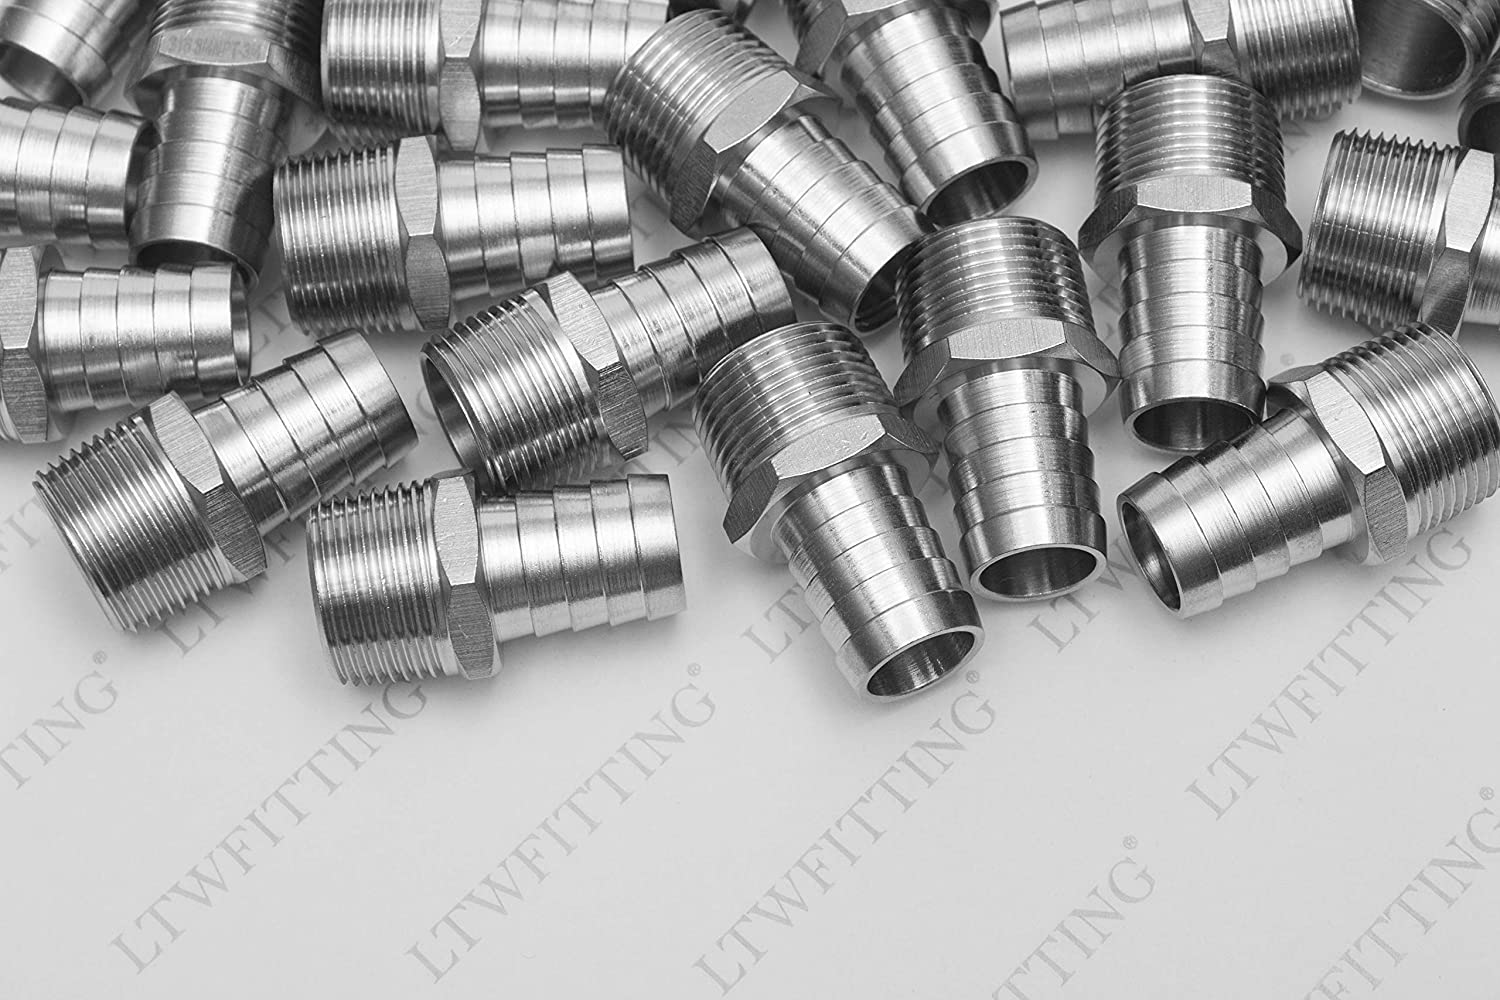 Pack of 5 LTWFITTING Bar Production Stainless Steel 316 Barb Fitting Coupler//Connector 5//16 Hose ID x 1//2 Male NPT Air Fuel Water